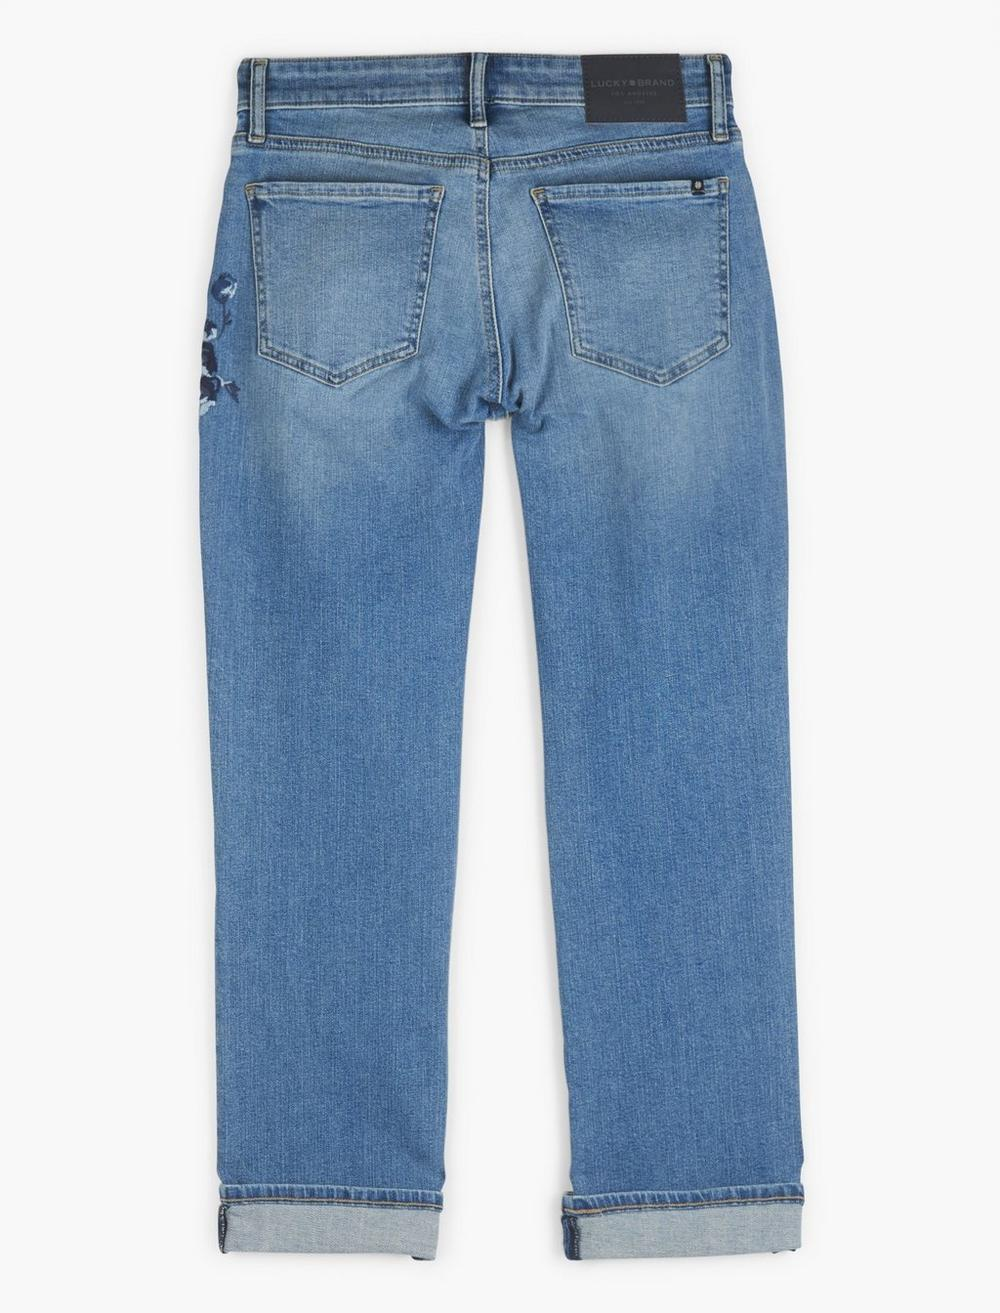 MID RISE SWEET CROP EMBROIDERED JEAN, image 2